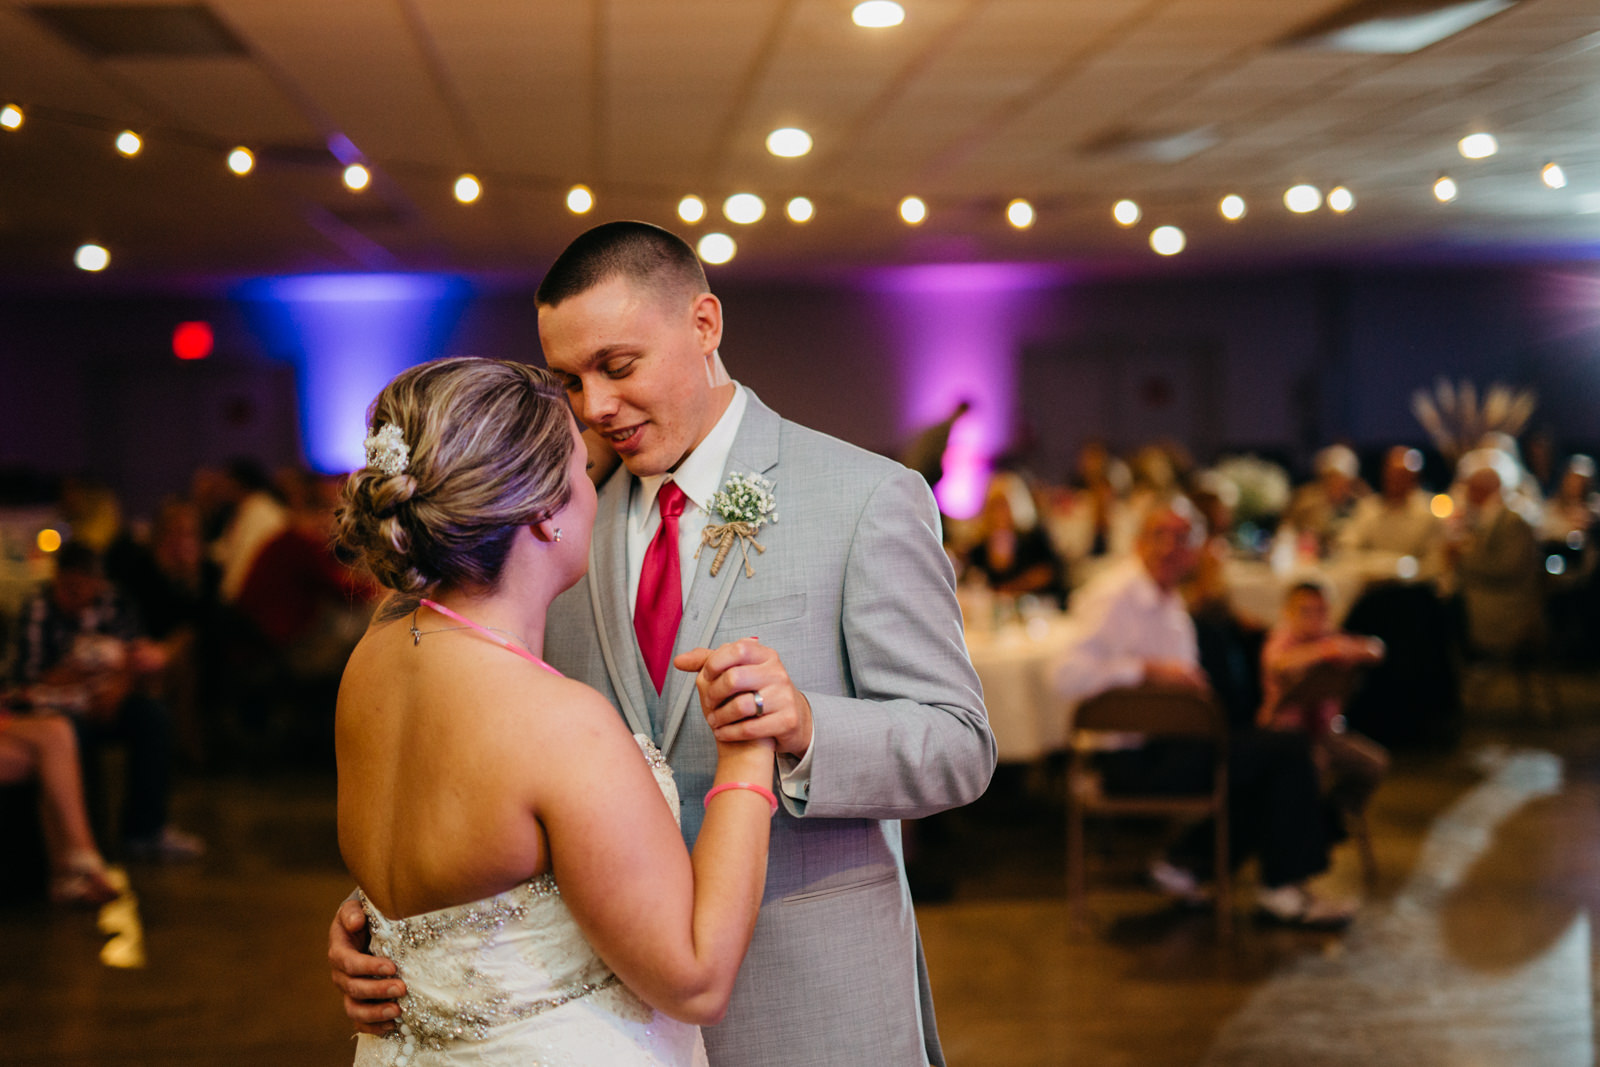 Bride and groom share their first dance at wedding reception